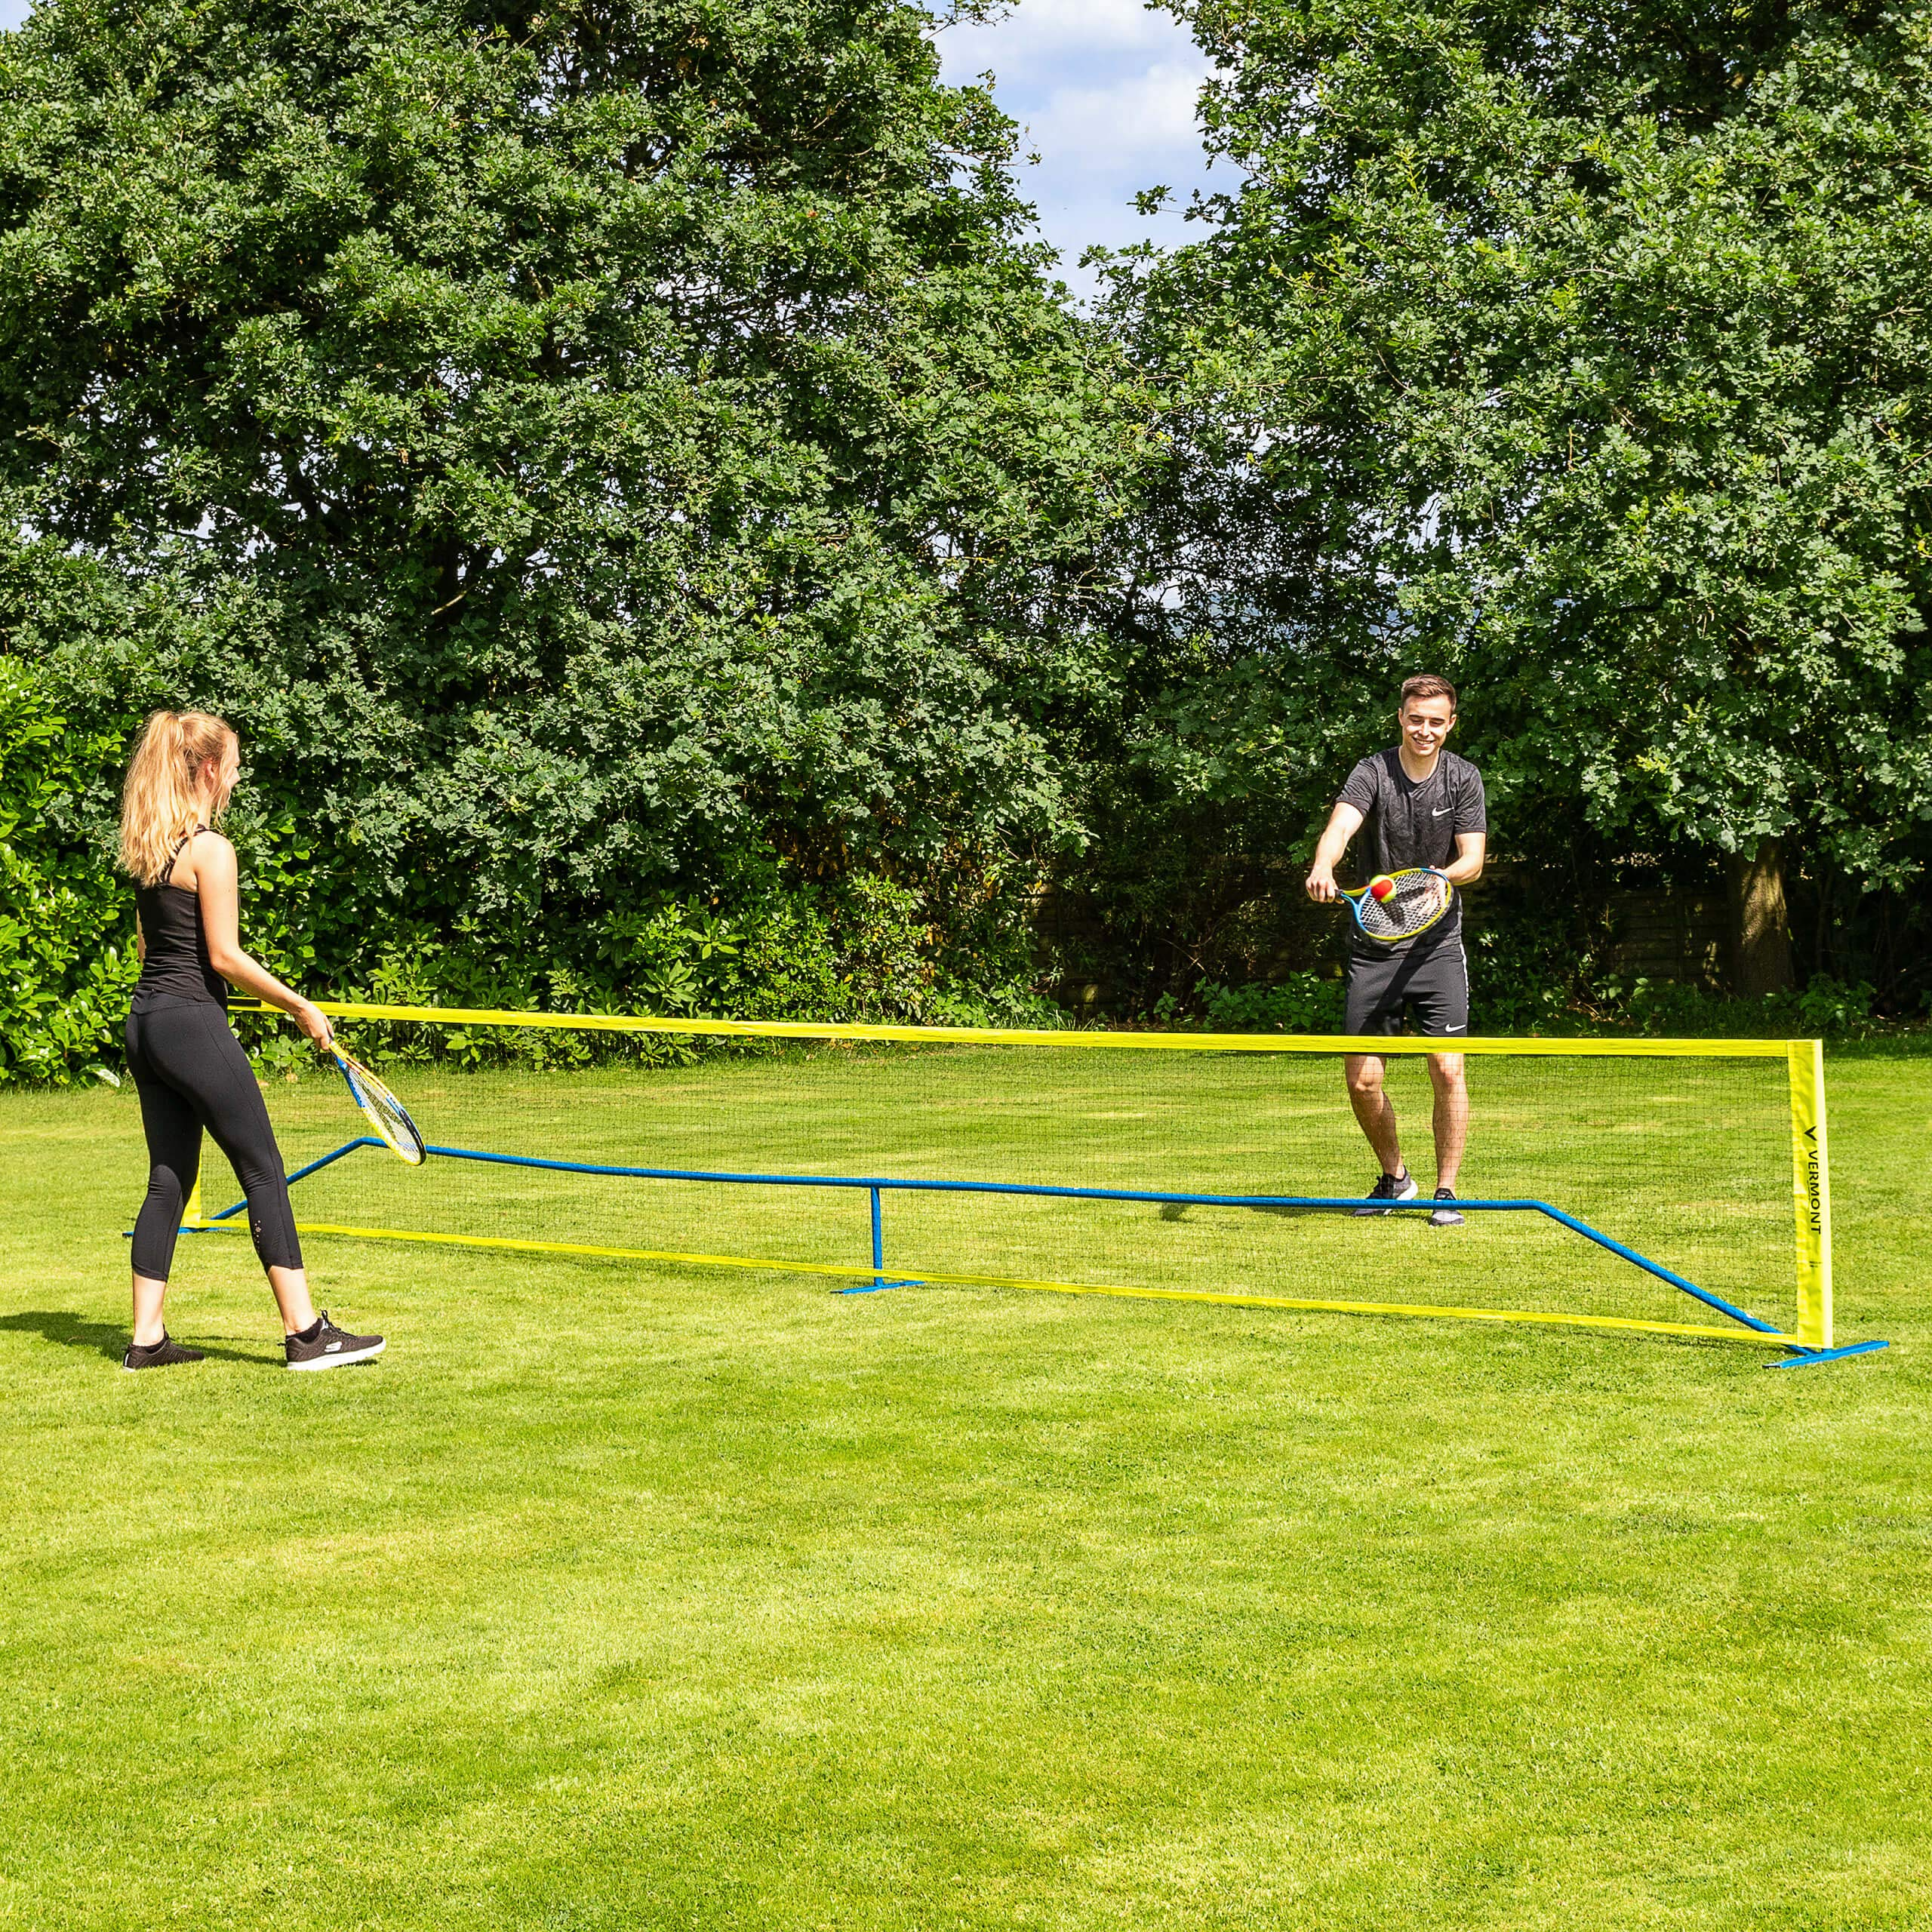 ProCourt Vermont Combi Net | Perfect for Tennis, Badminton, Pickleball, Volleyball & Soccer Tennis | Super Quick Assembly with Steel Poles | Use Indoors, Outdoors, On The Beach Or The Backyard! by ProCourt (Image #2)